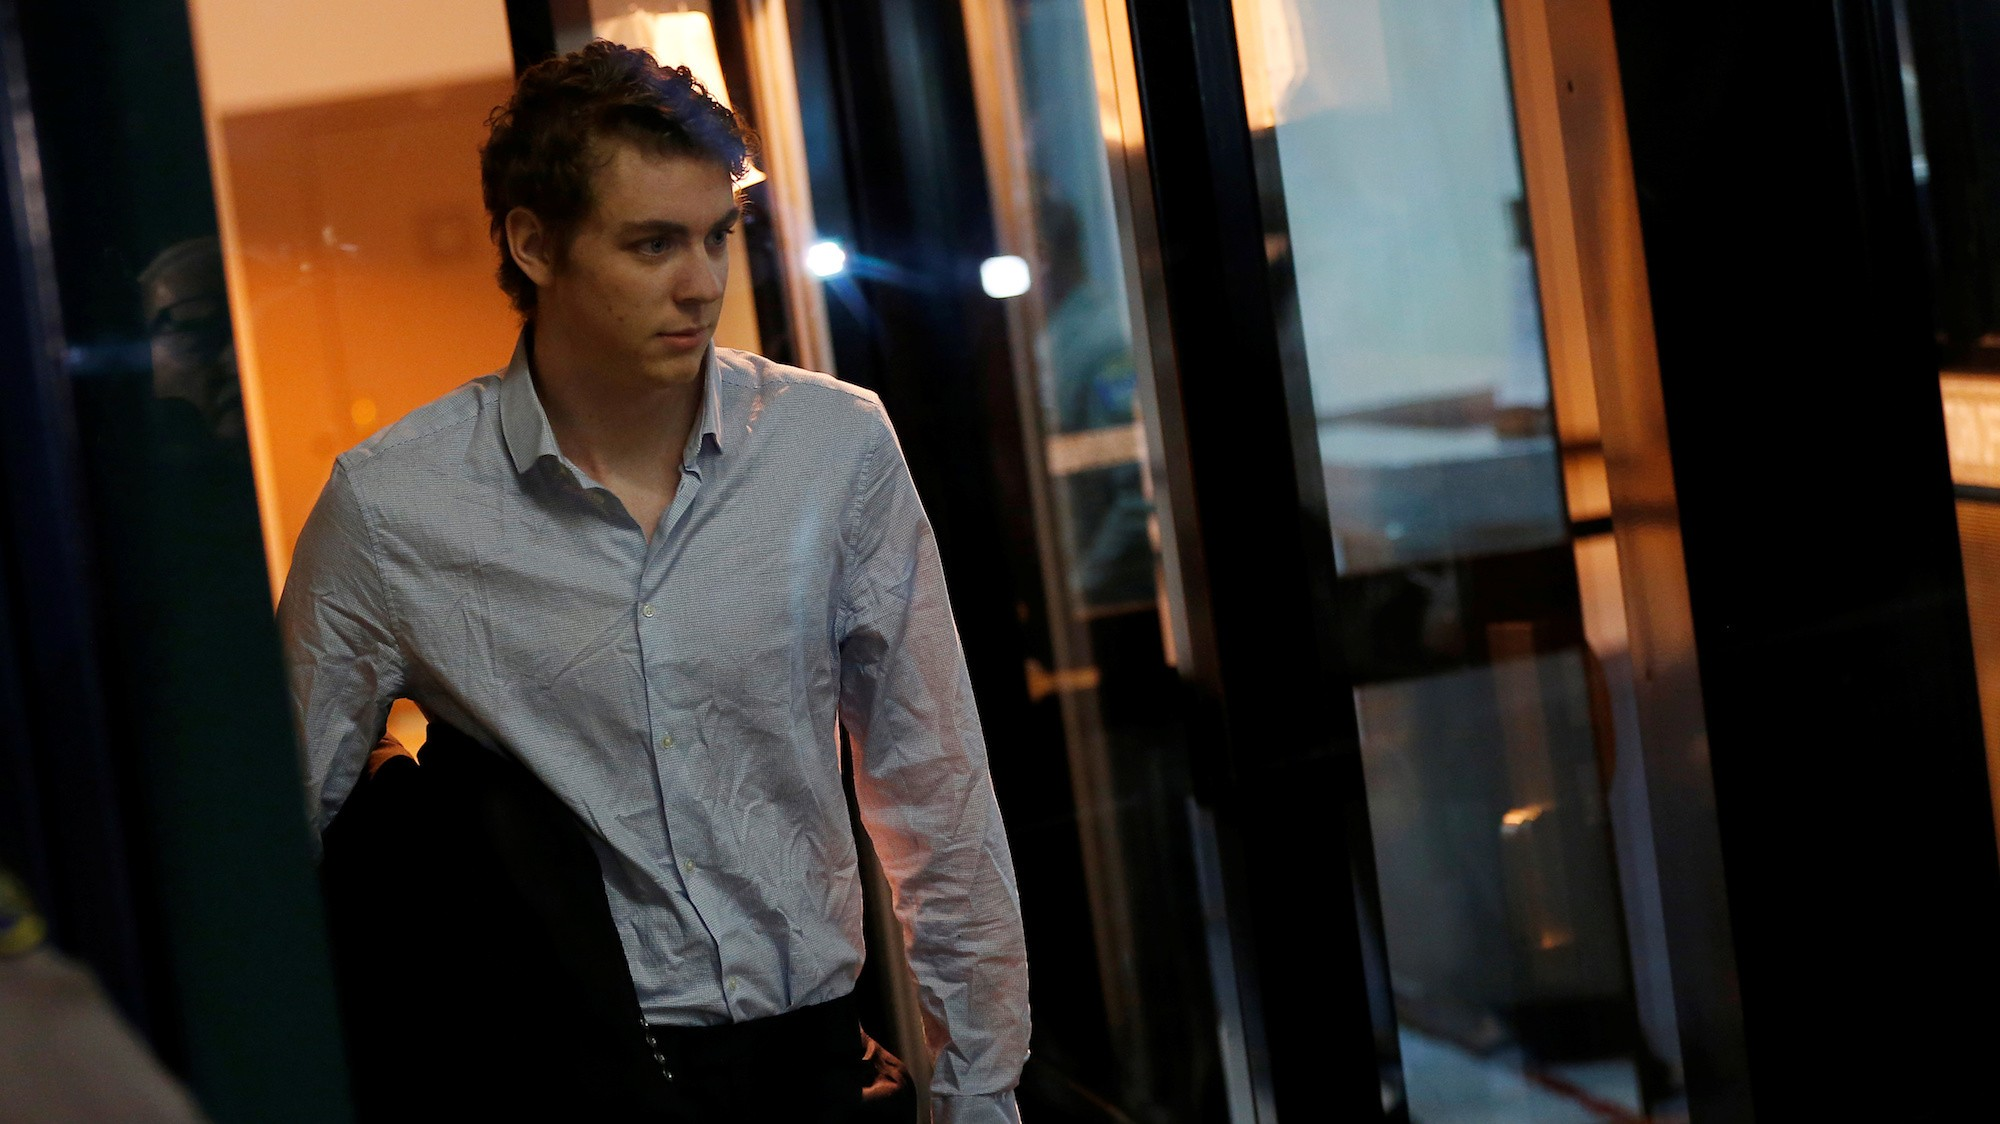 Brock Turner would be in prison right now under a proposed California law